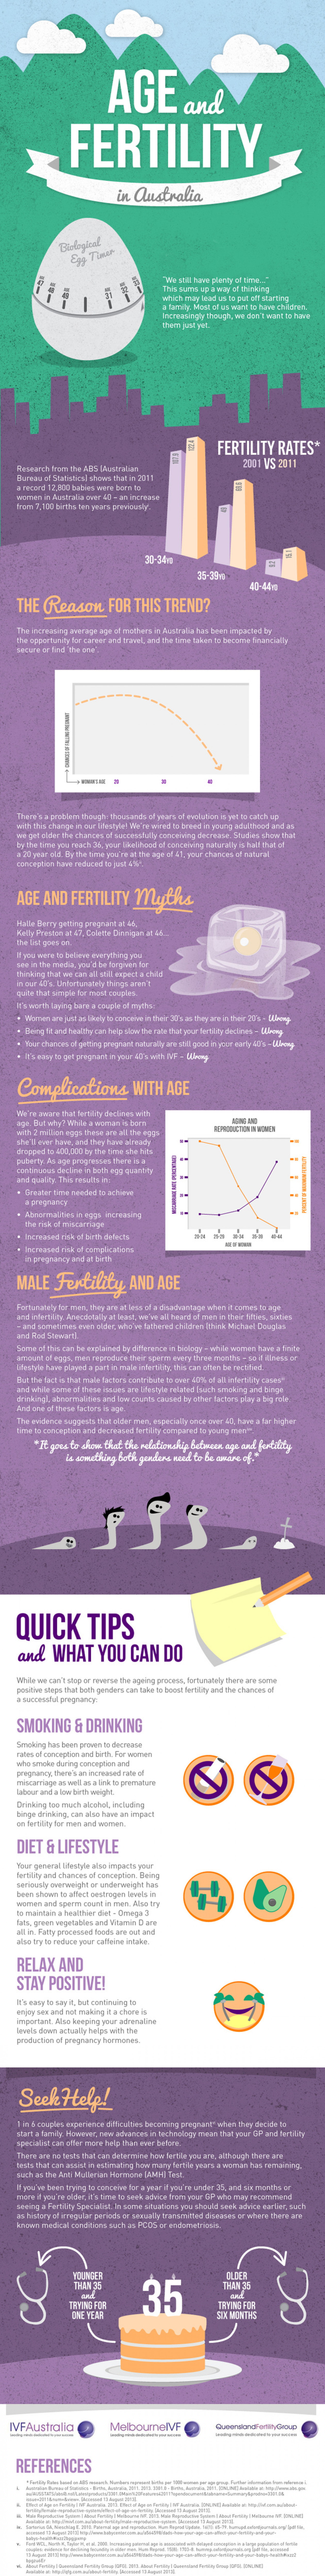 Snapshot of Fertility in Australia Infographic